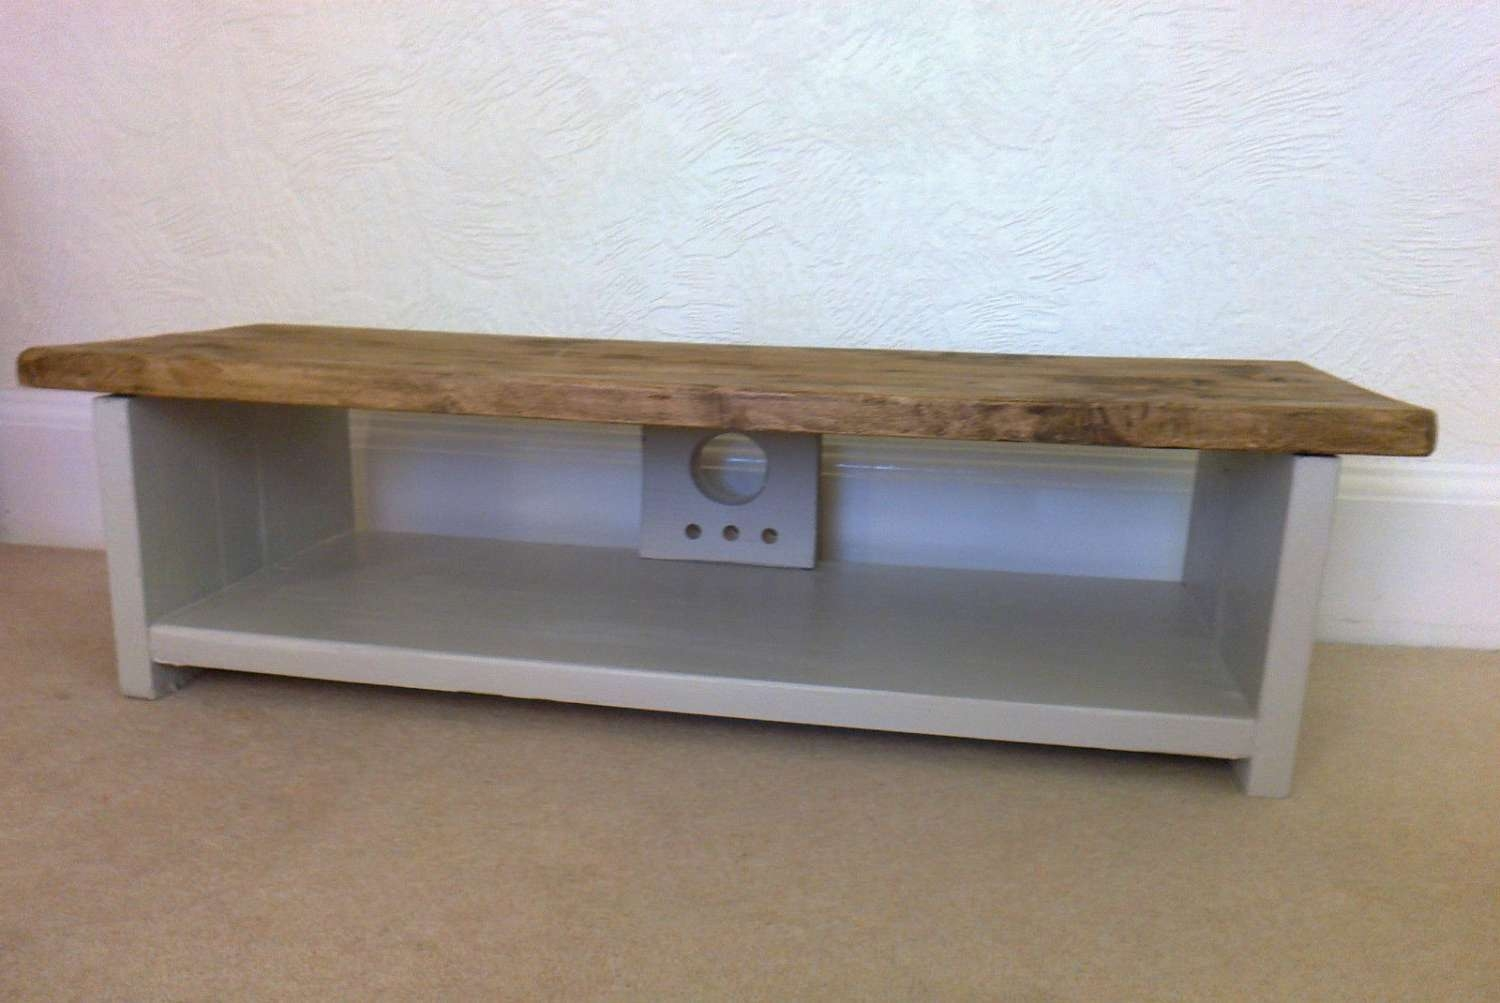 Low Tv Stand Rustic Pine Tv Unit / Table For Large Lcd Intended For Pine Tv Stands (View 3 of 20)